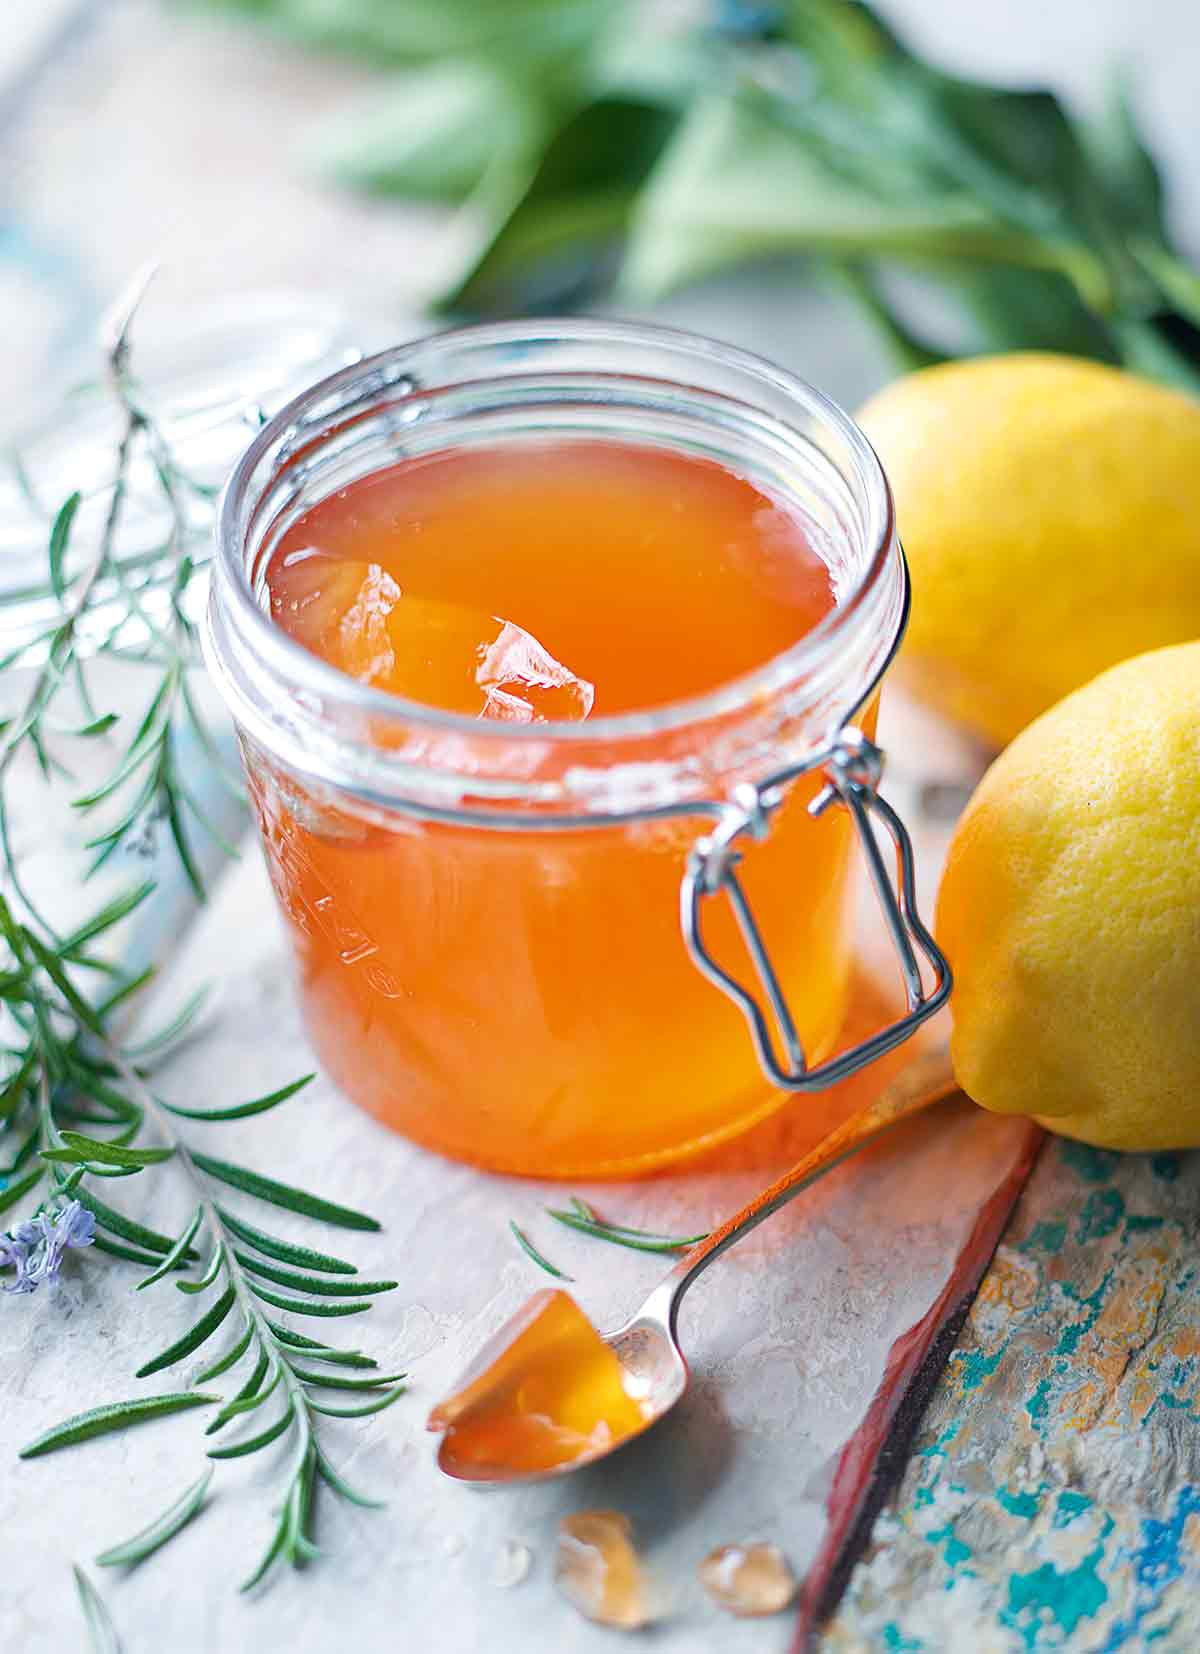 Honey, Rosemary, and Apple Jelly Recipe